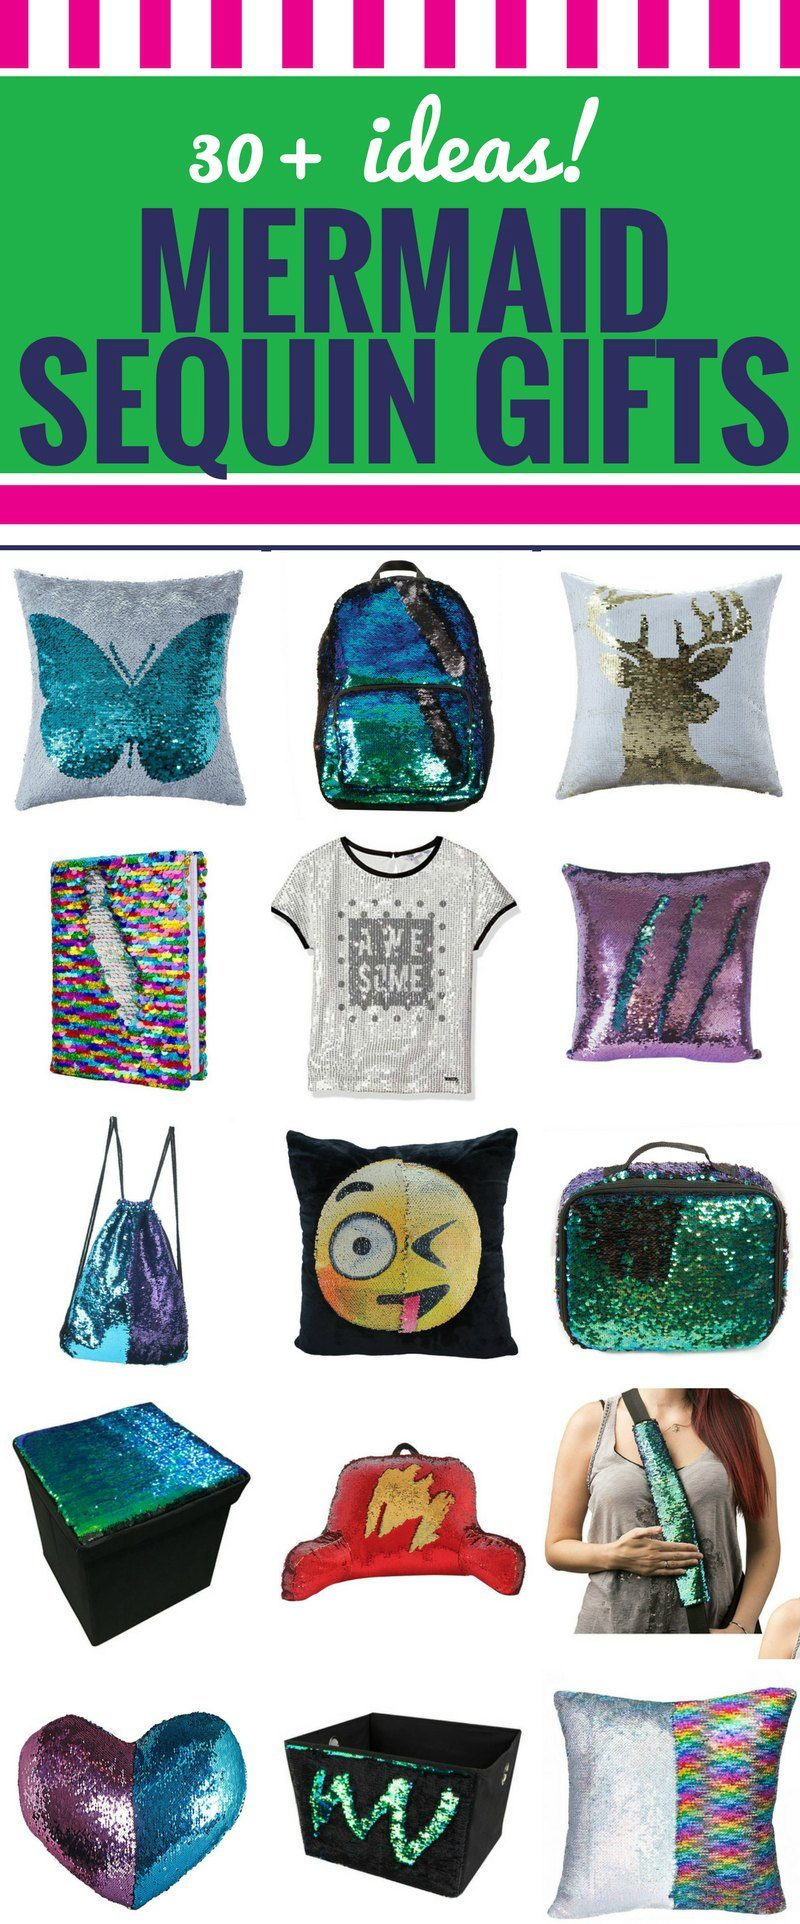 Mermaid Sequin Gift Ideas for Teens, Tweens and Toddlers - My Life ...